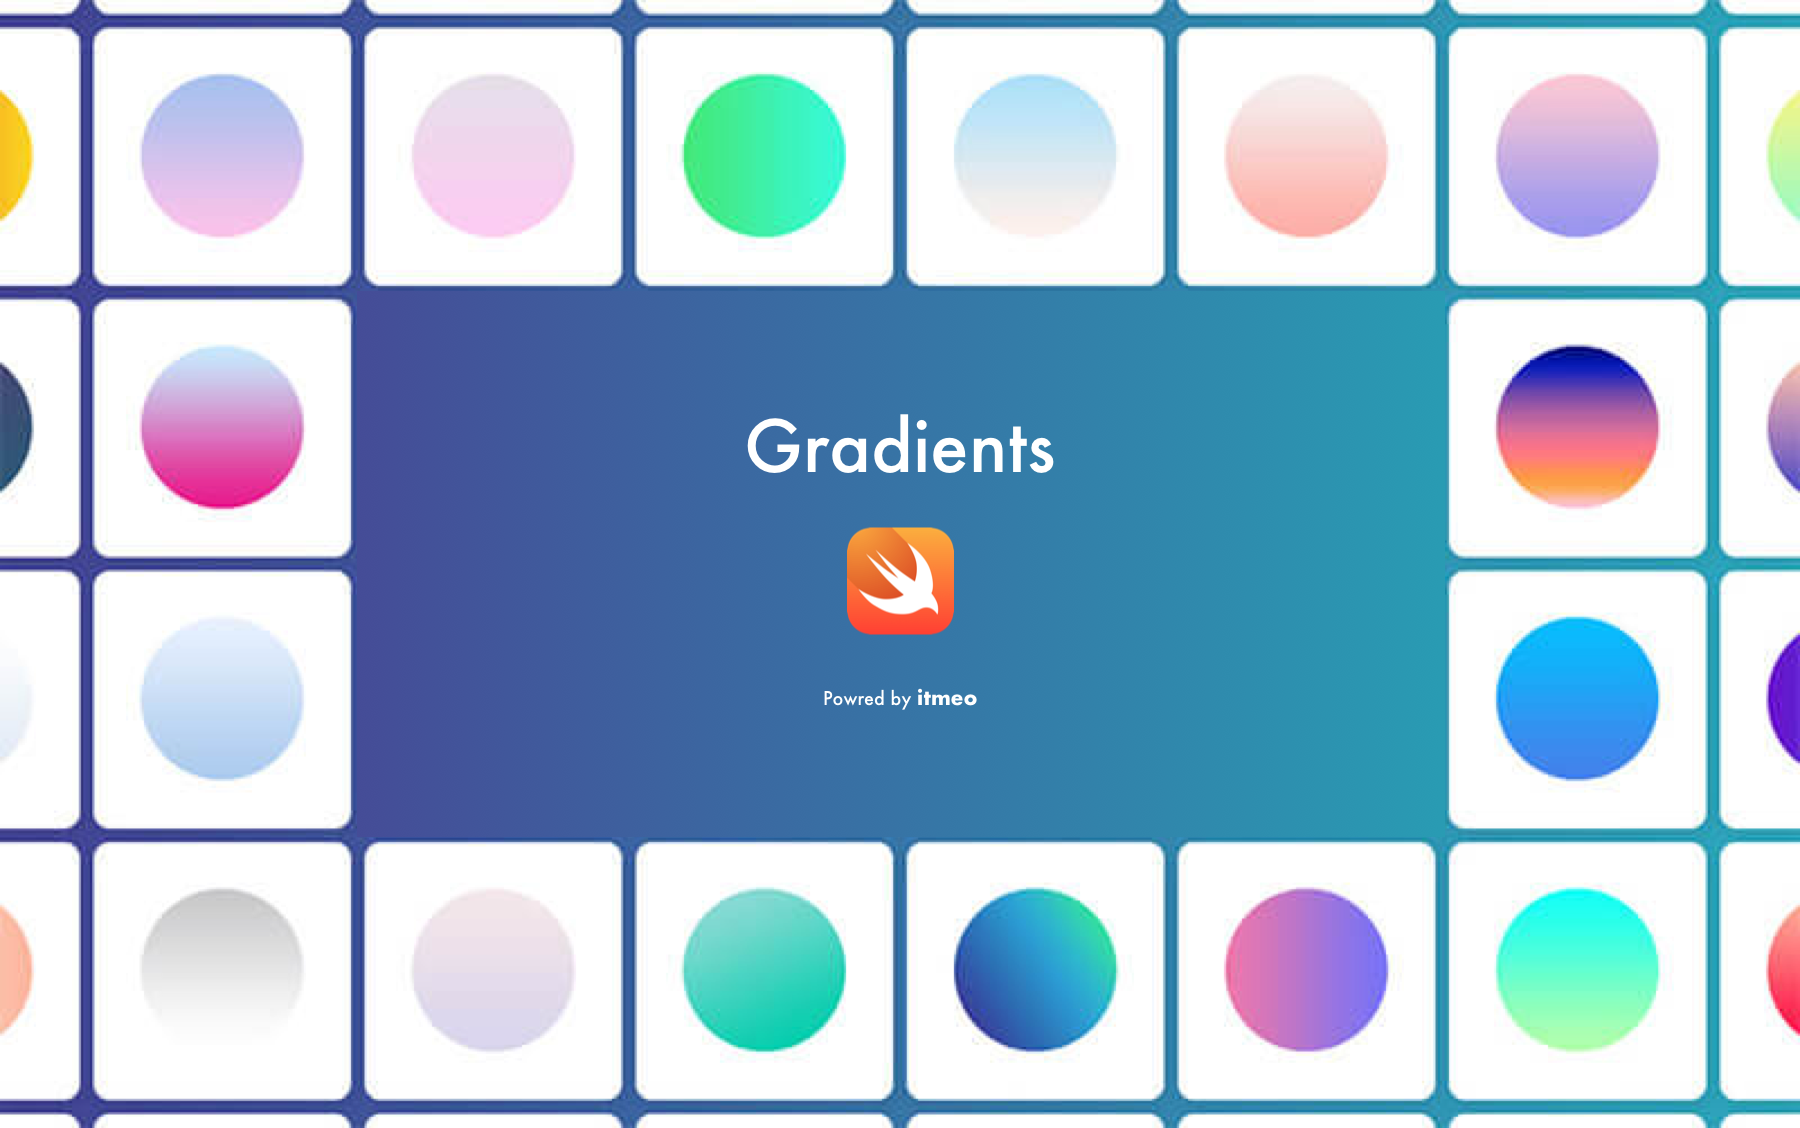 Gradients screenshot